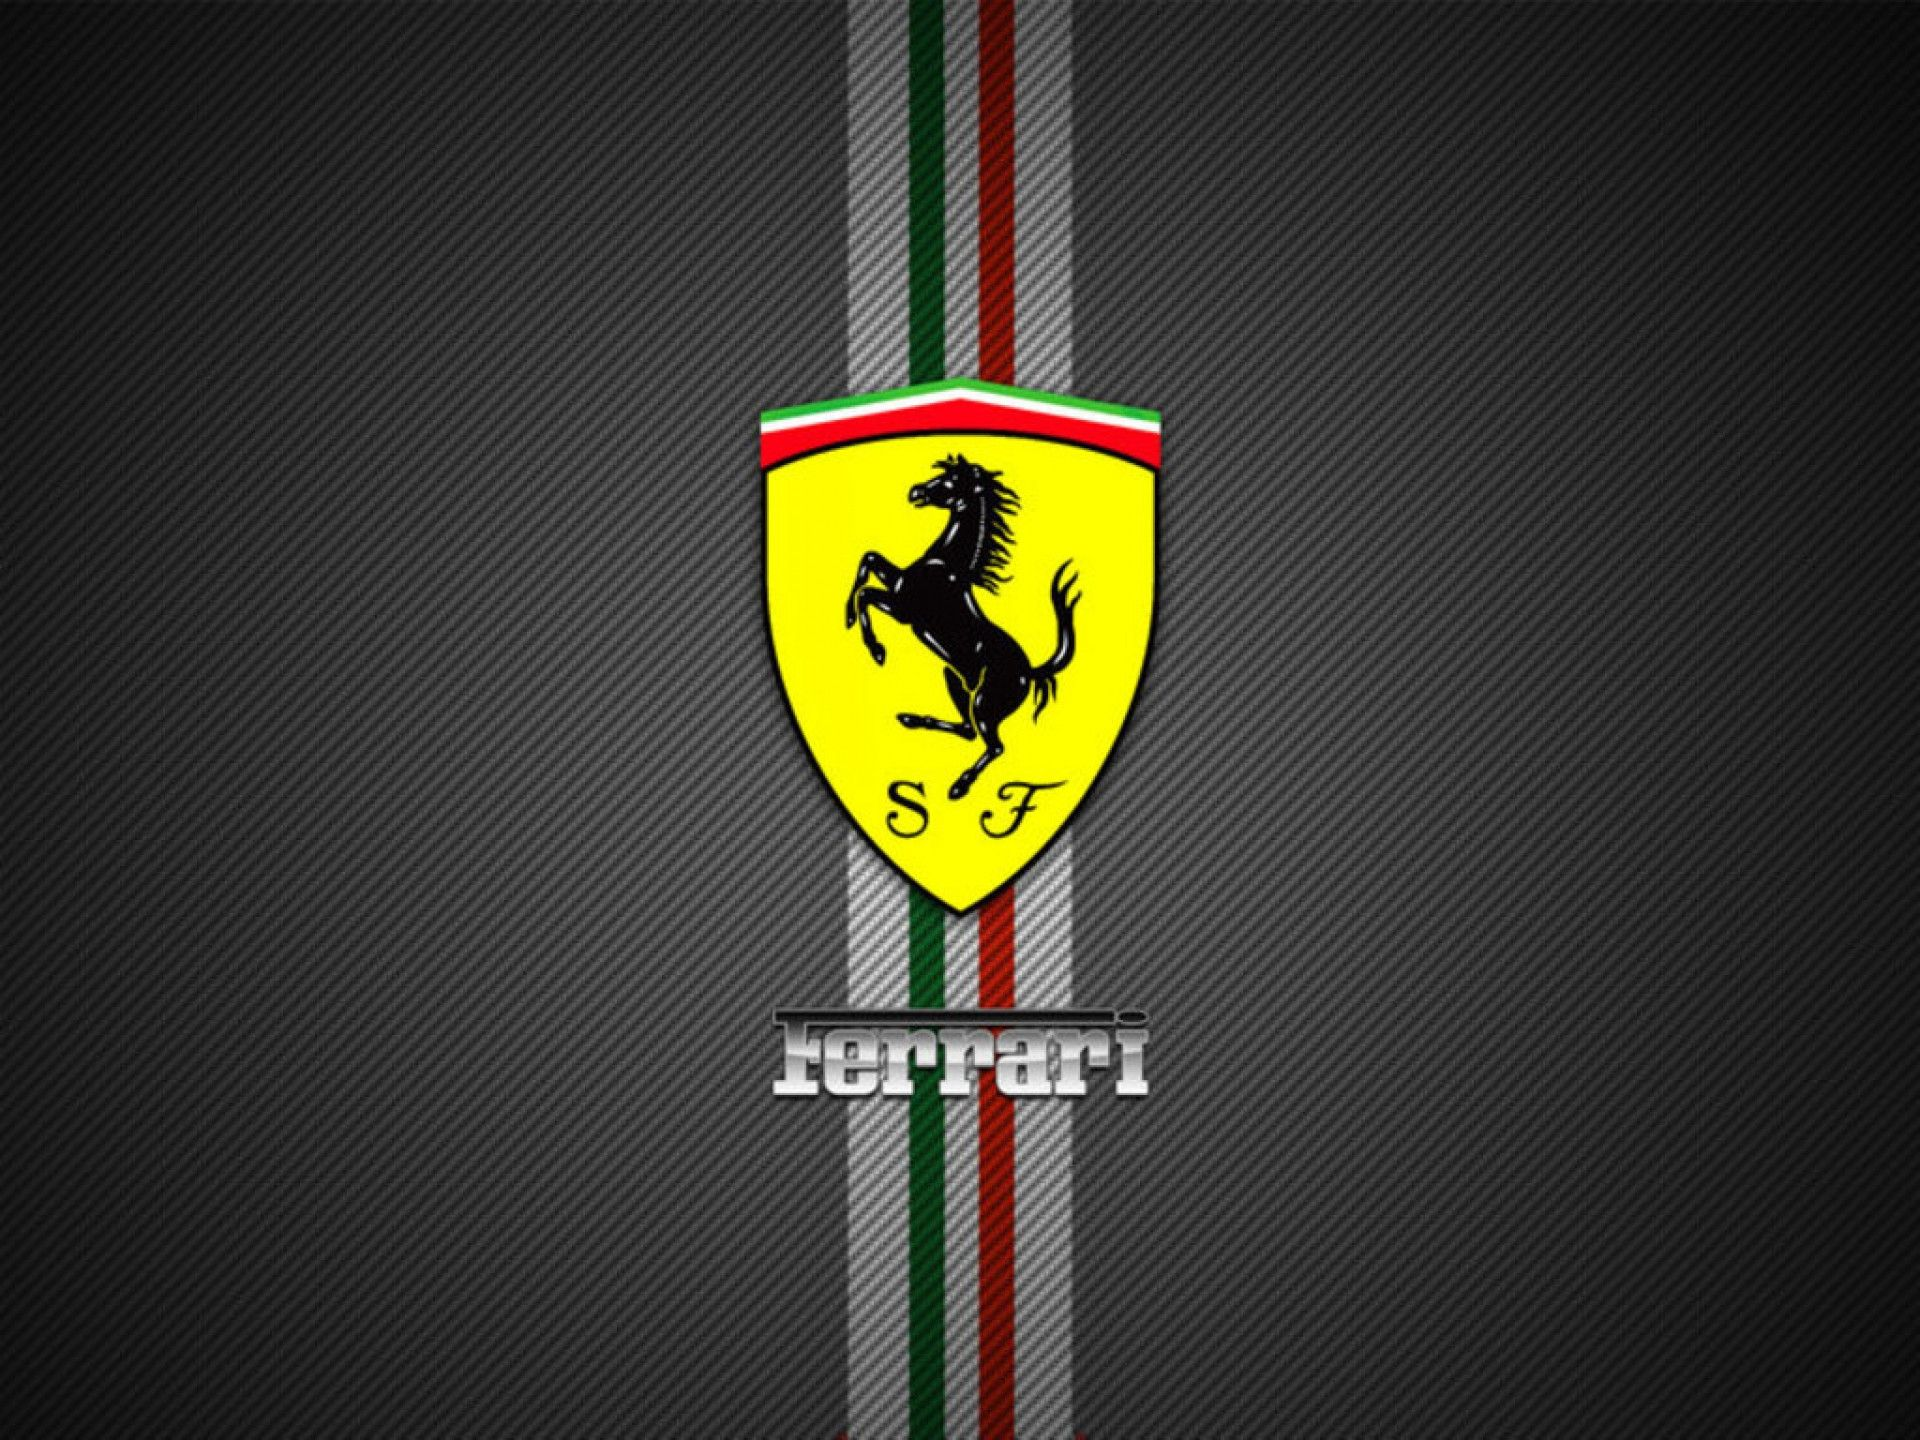 43 Desktop Images of Ferrari Logo | Ferrari Logo Wallpapers